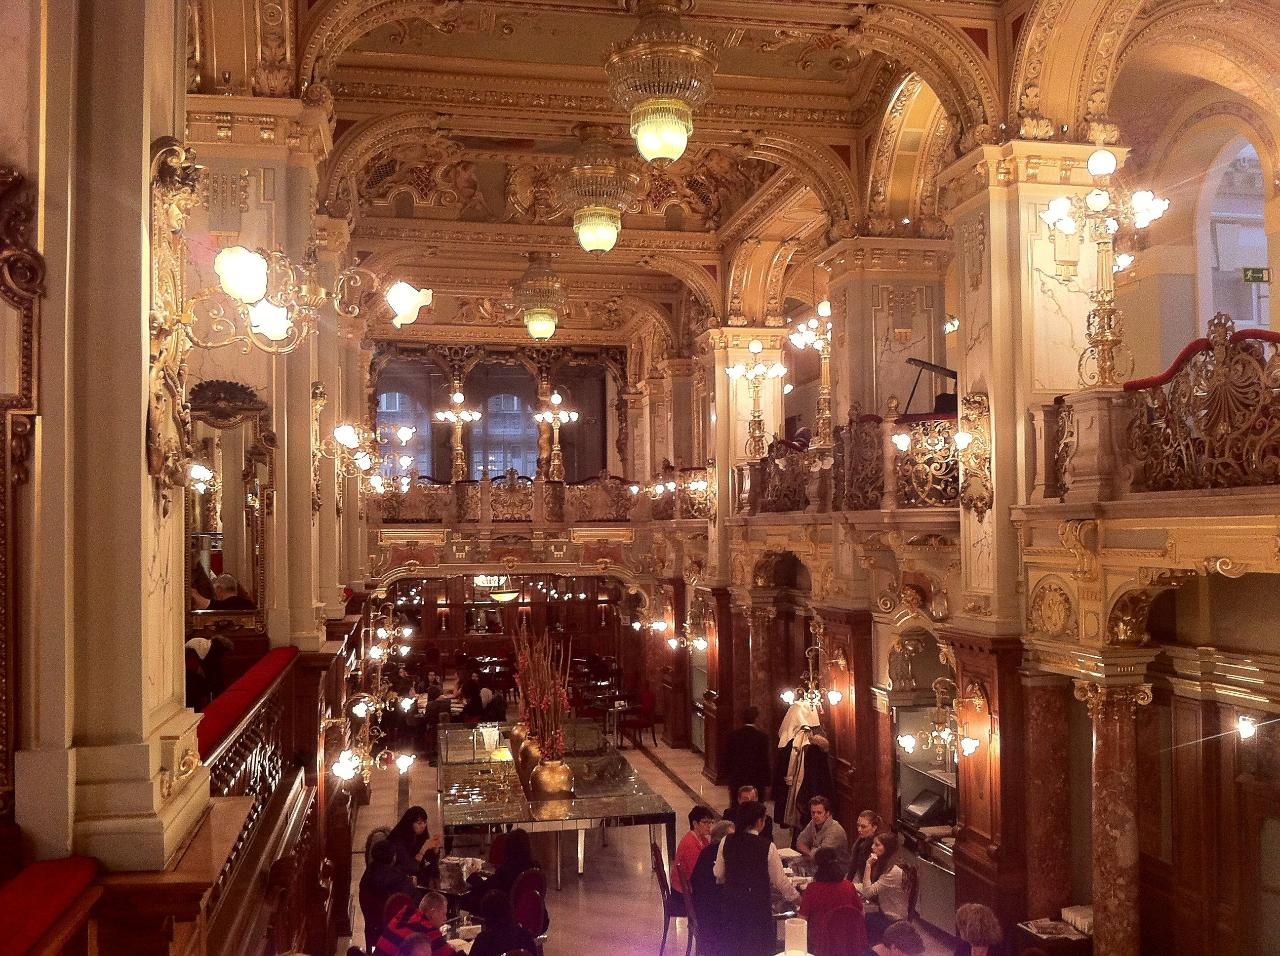 Cafe Wandering: An Excursion through Budapest's Belle Epoque